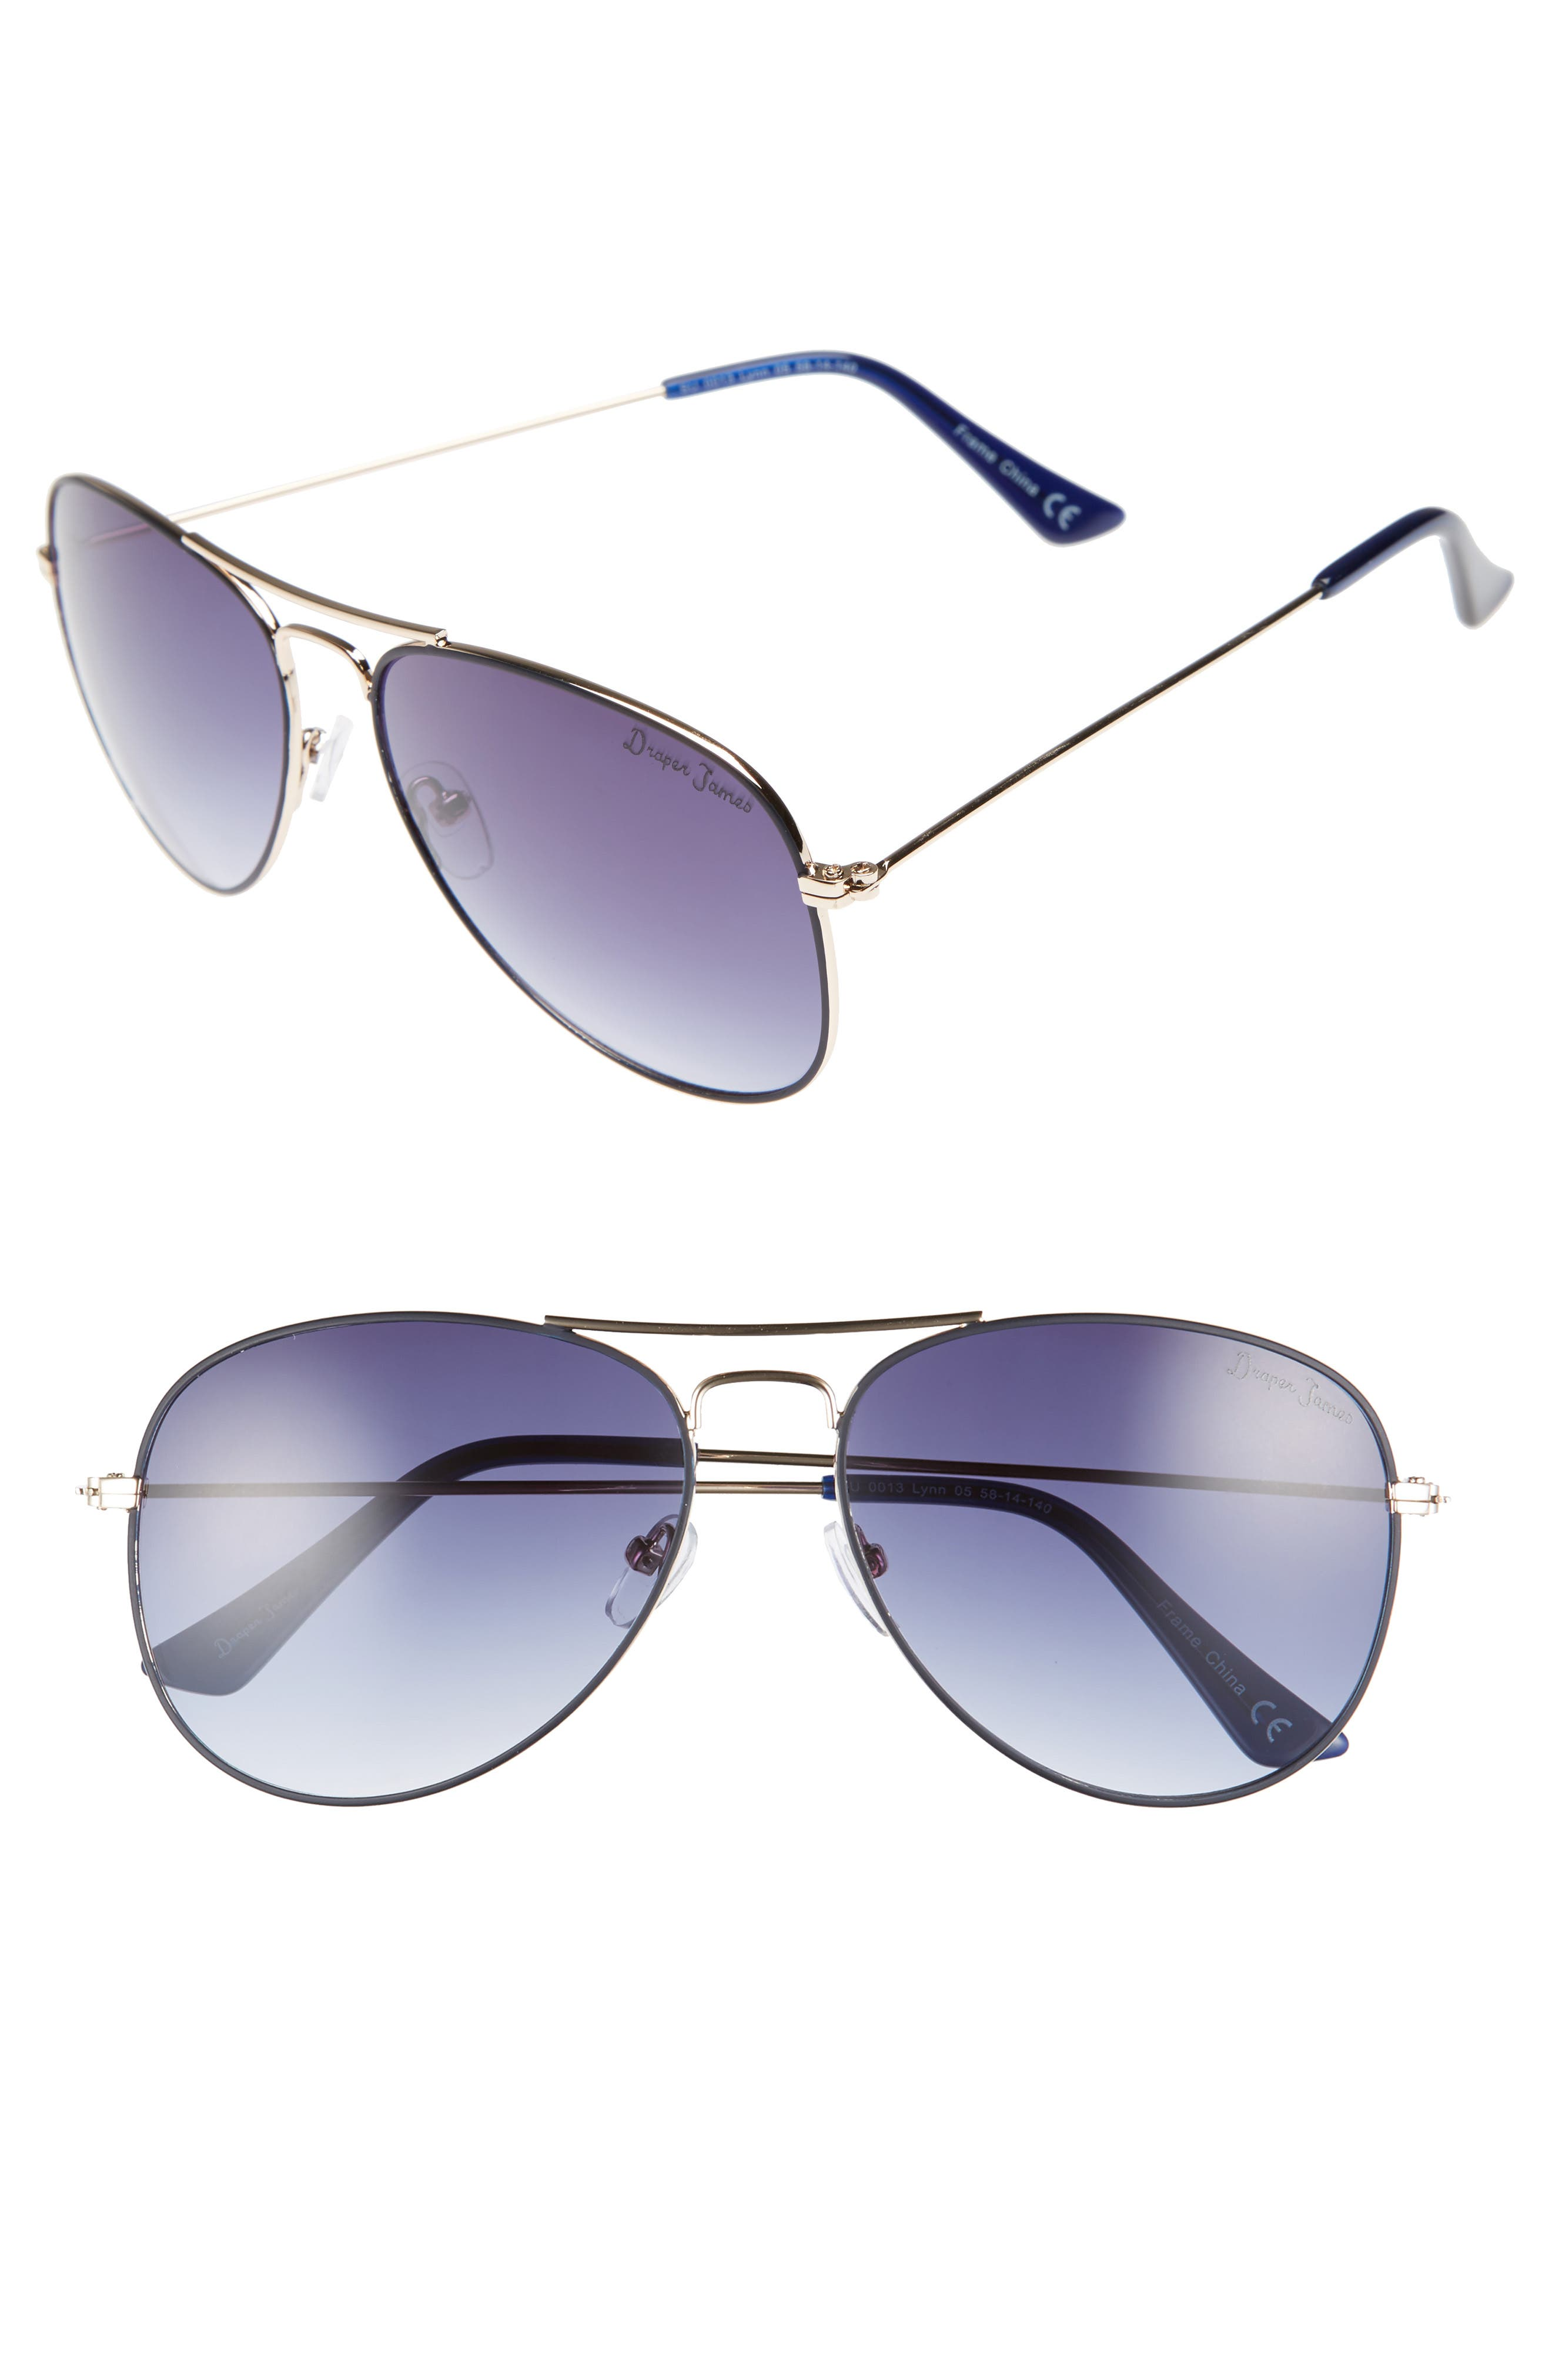 58mm Gradient Aviator Sunglasses,                         Main,                         color,